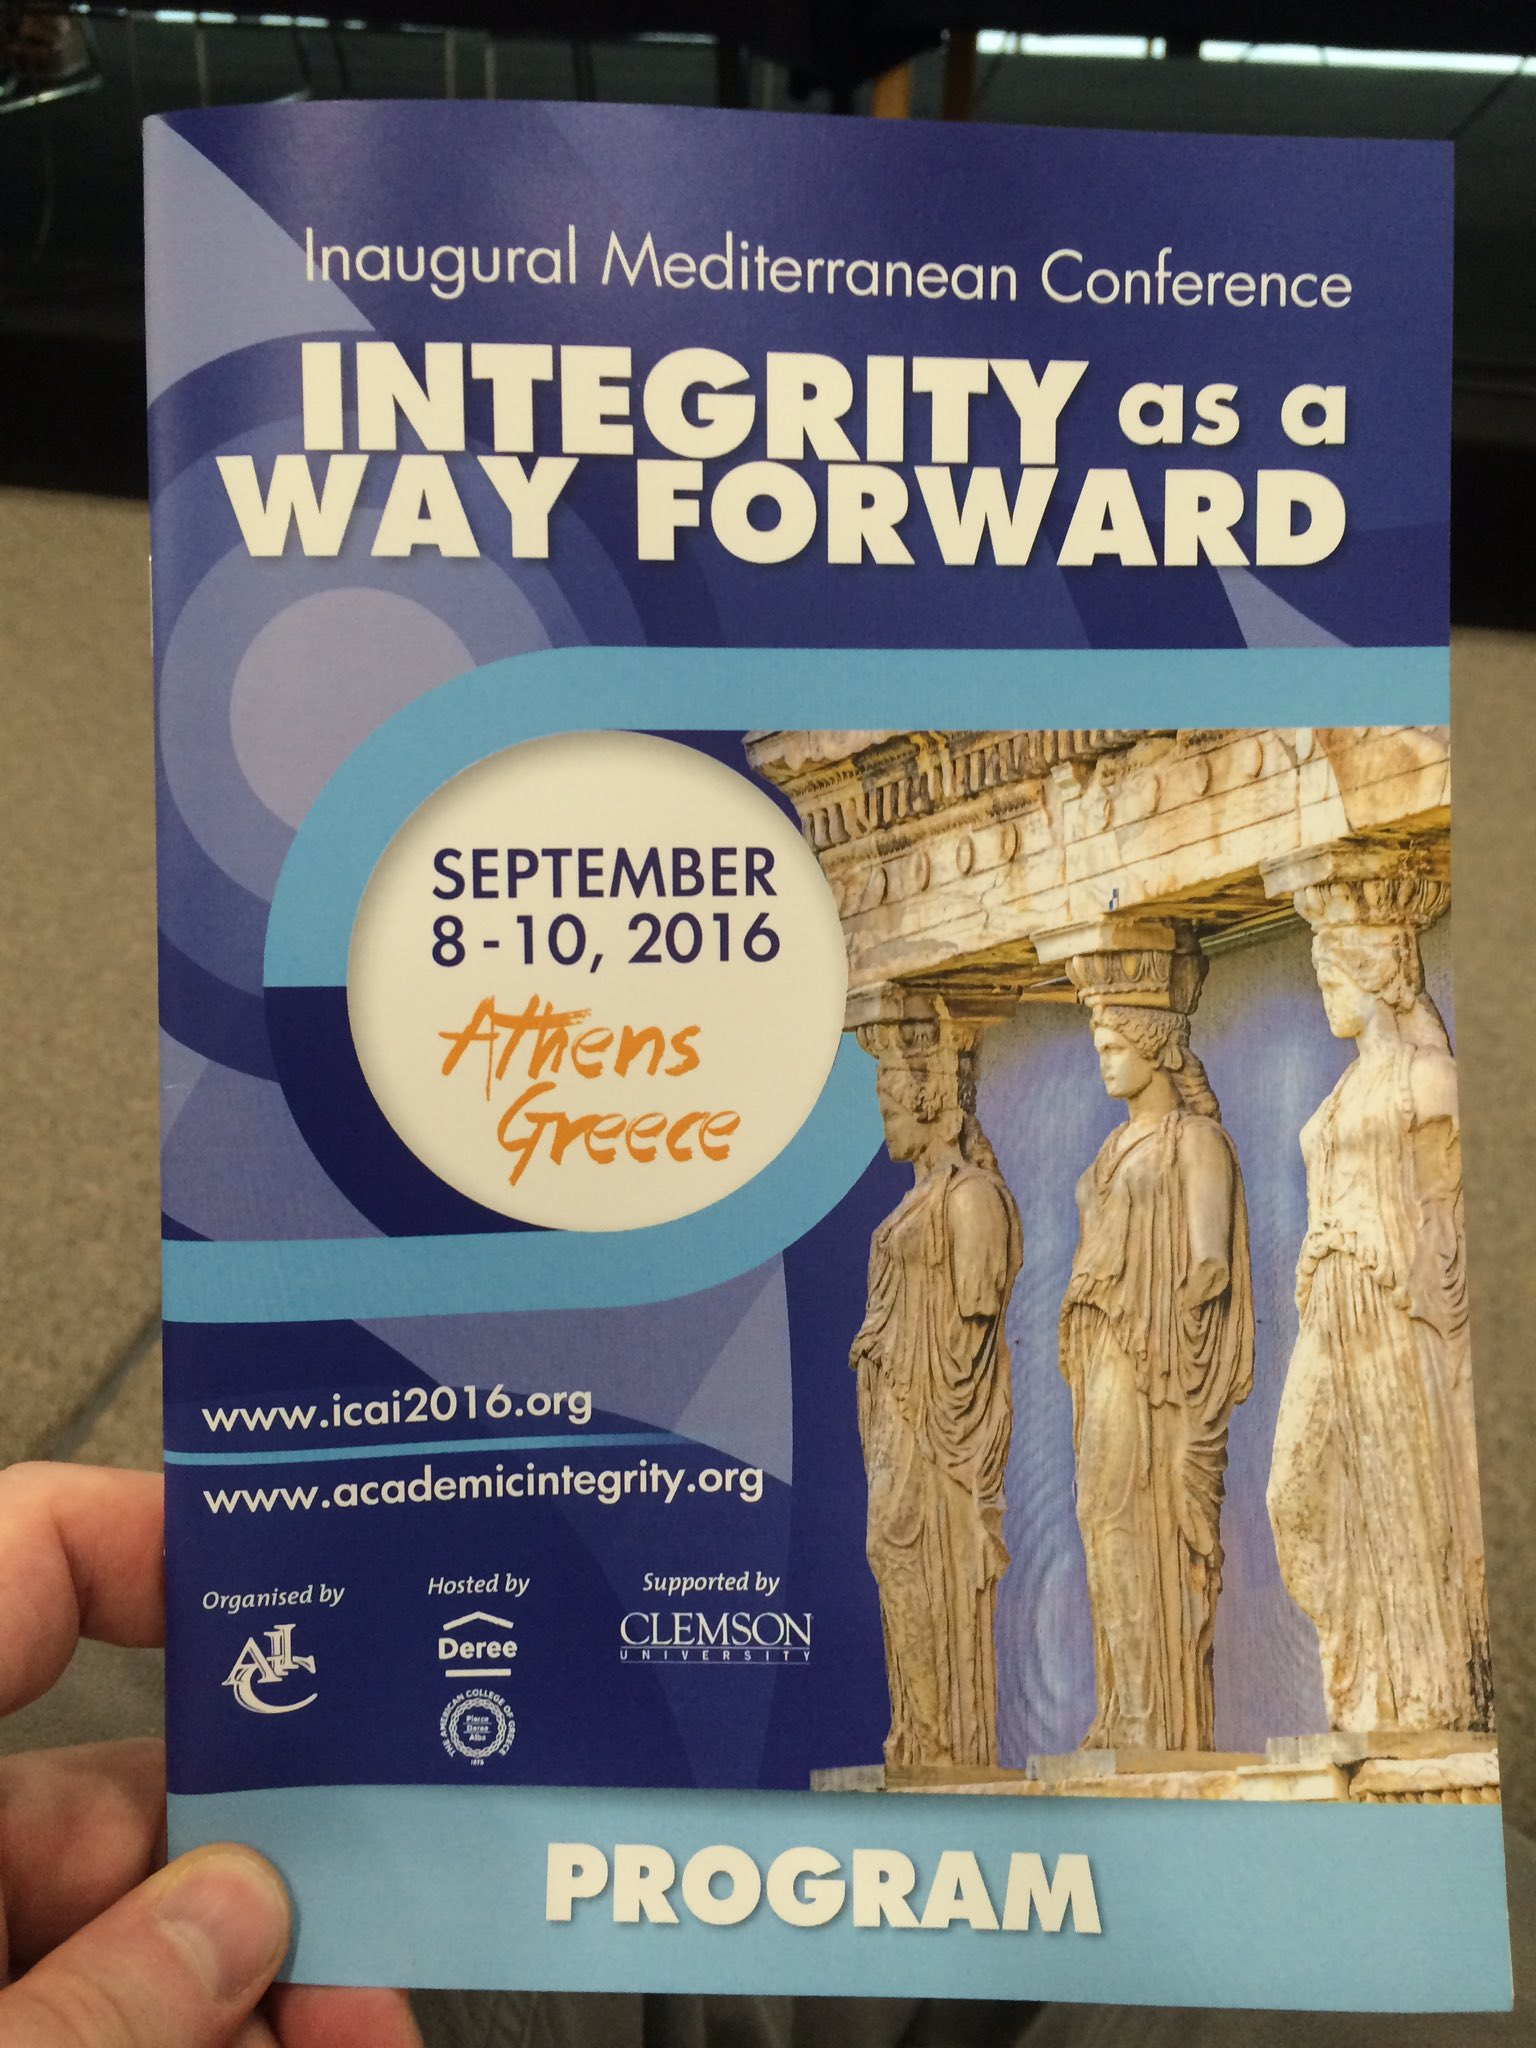 Thumbnail for International Center For Academic Integrity Inaugural Mediterranean Conference - Athens, Greece - September 2016